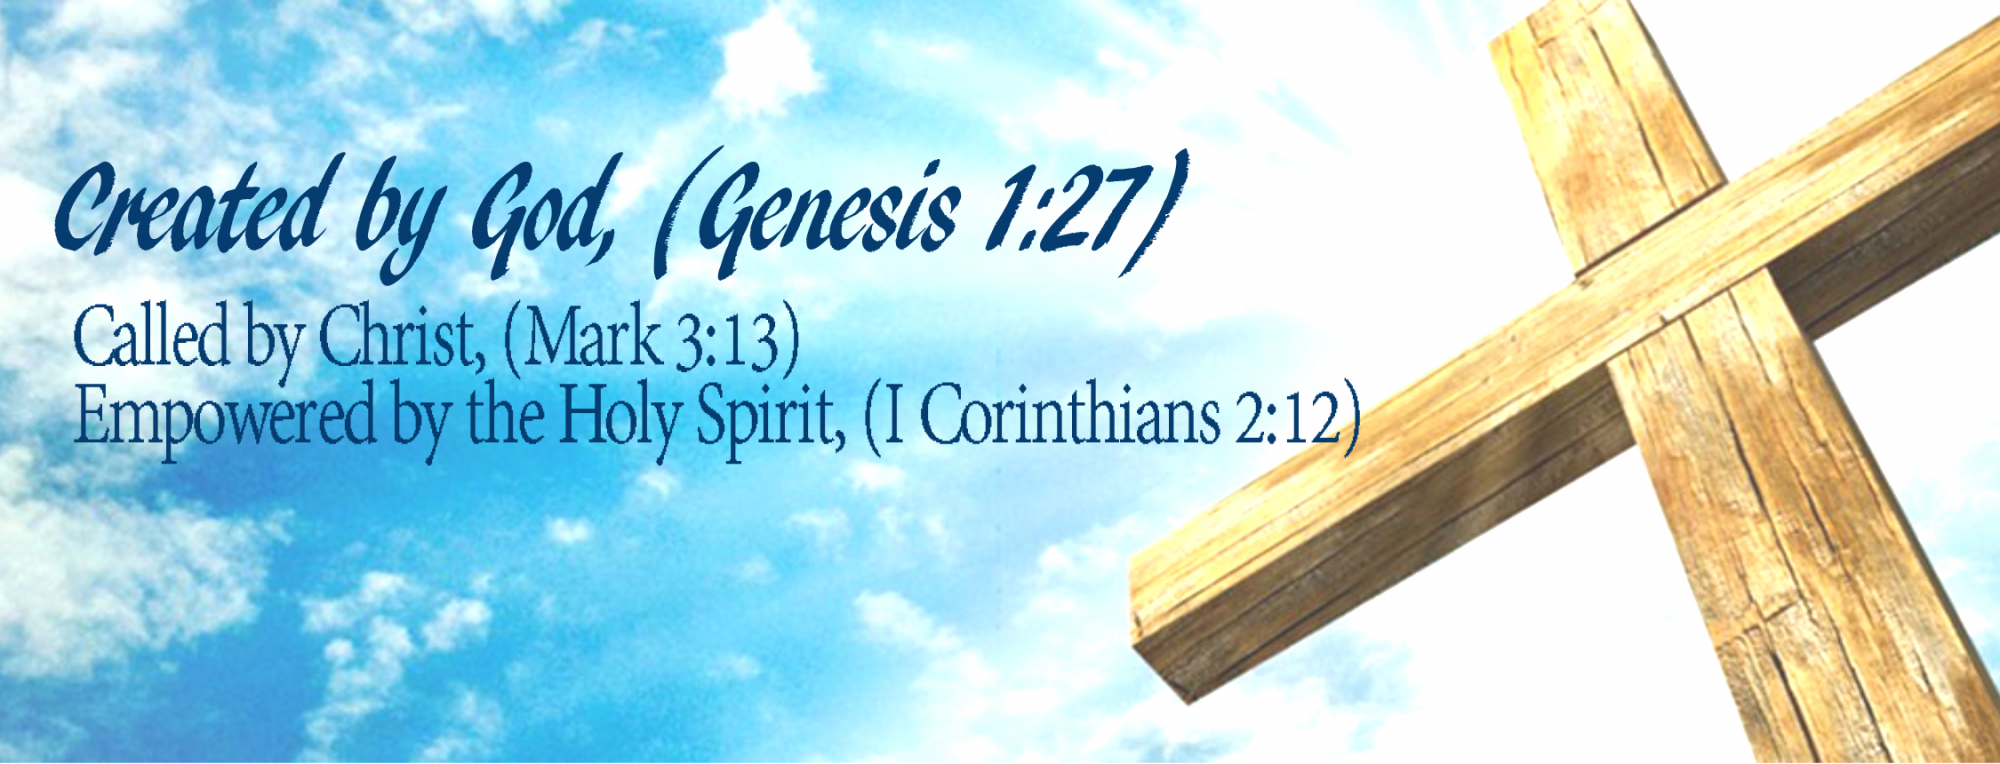 created by god etc banner